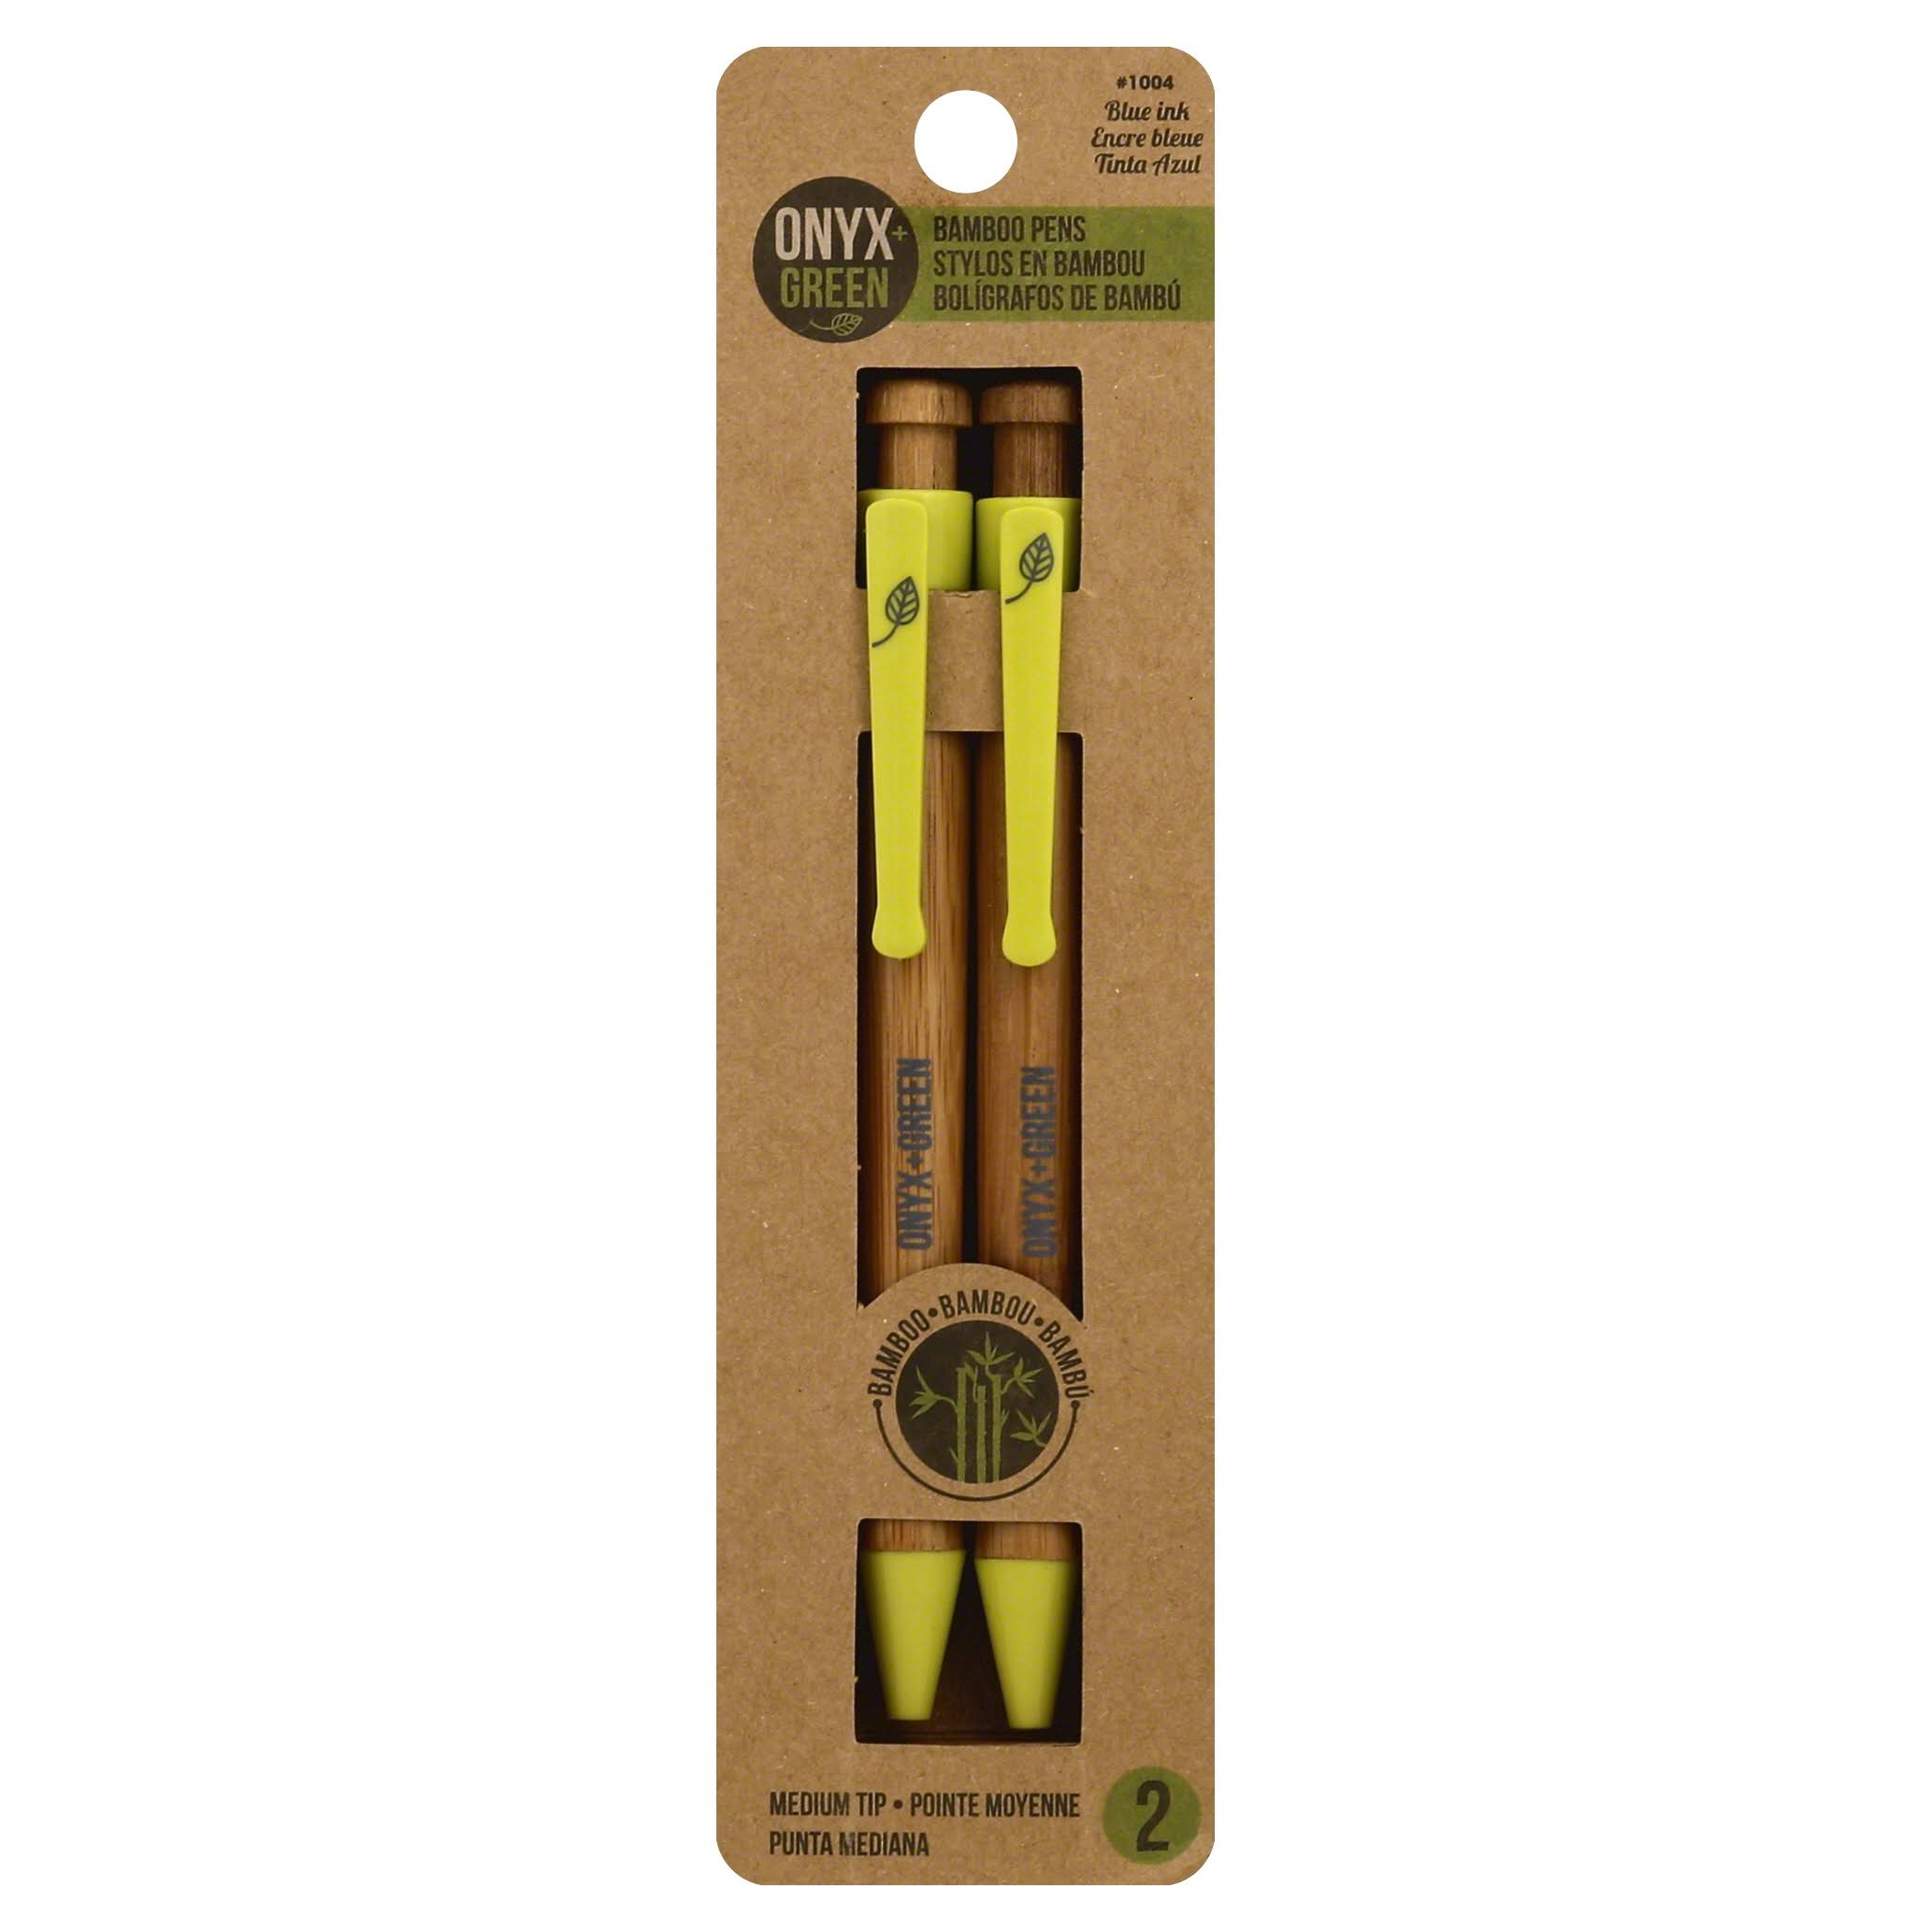 Onyx & Green Bamboo Pen - 2 Pack